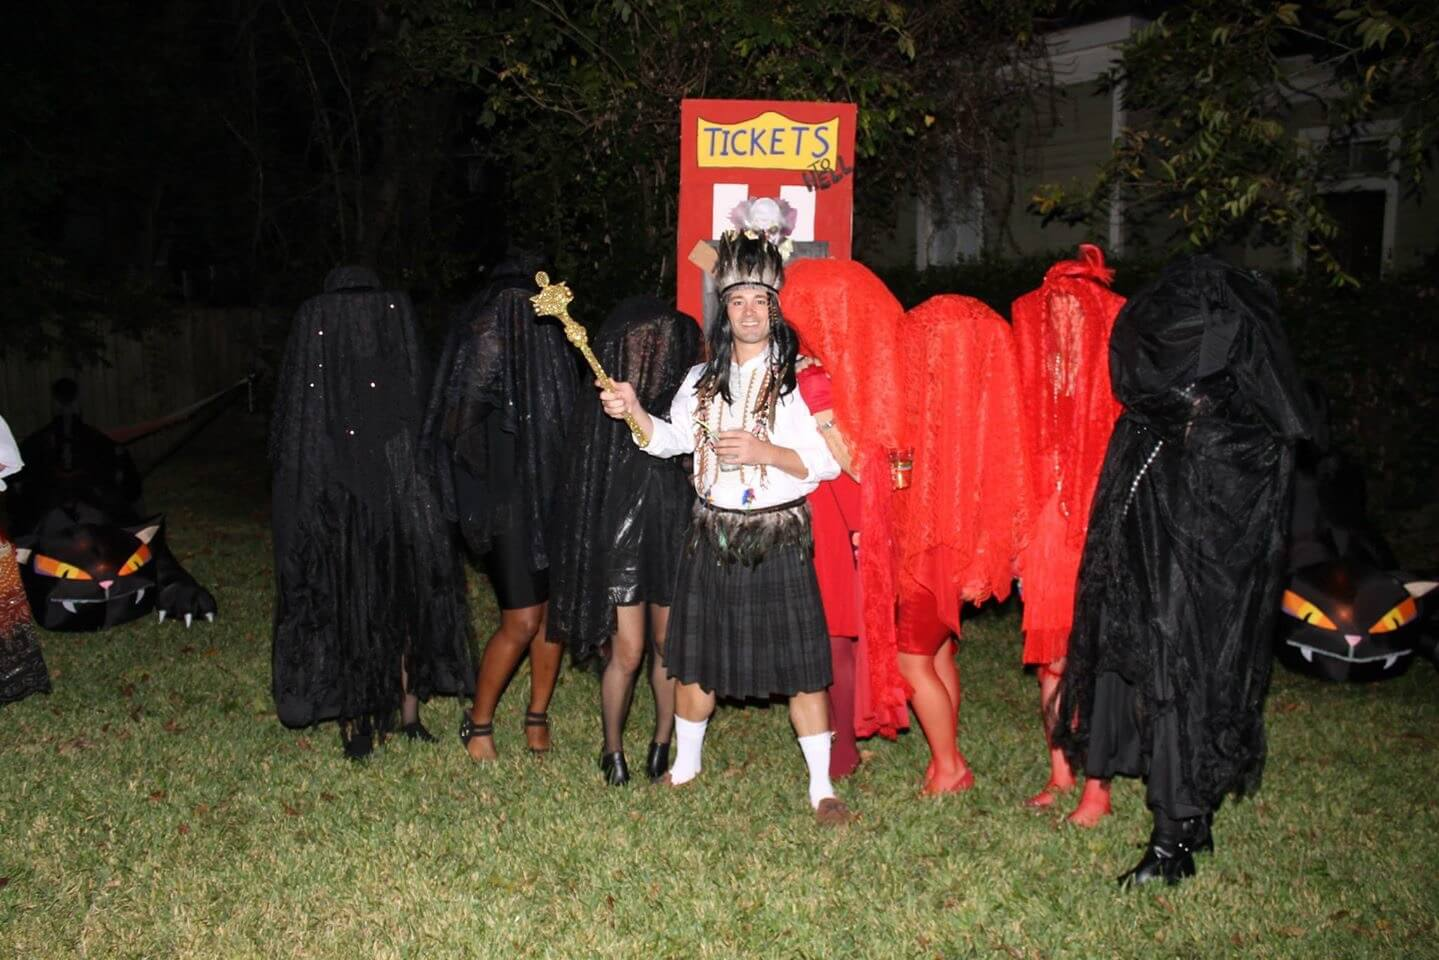 Freaky clowns, Buttercup and the Hot-Crazy Matrix Guy raise 'Cain' on Halloween